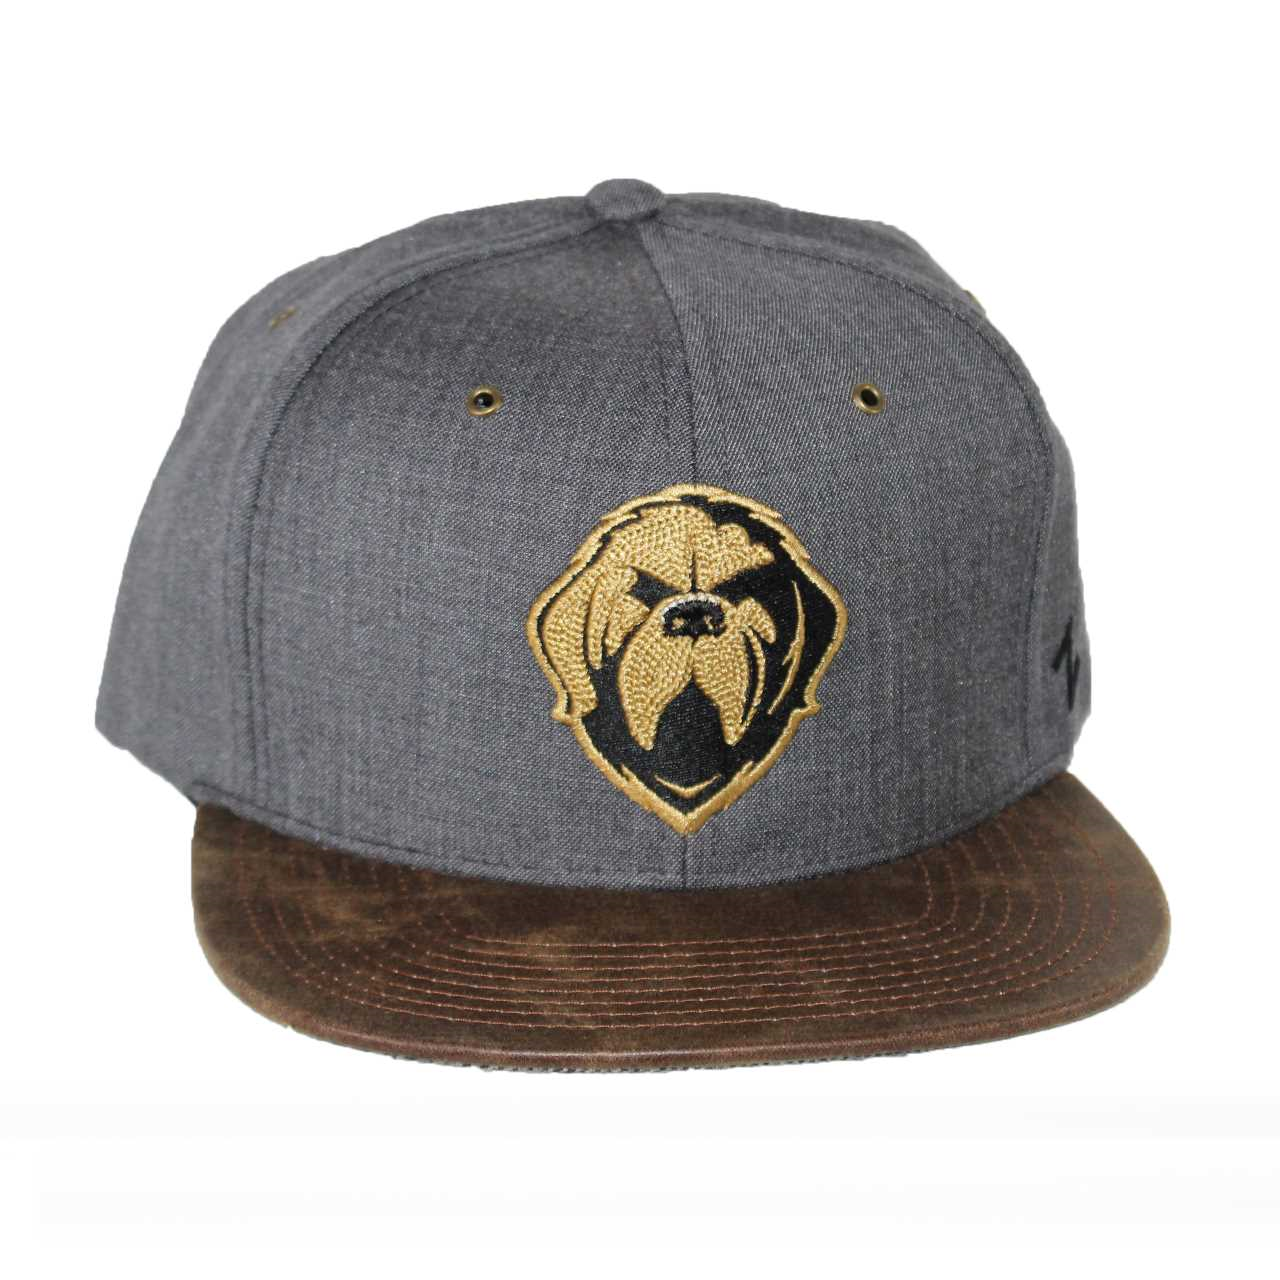 9772ae7be18fd Zephyr Monarch Snapback Hat – GrowlersGear